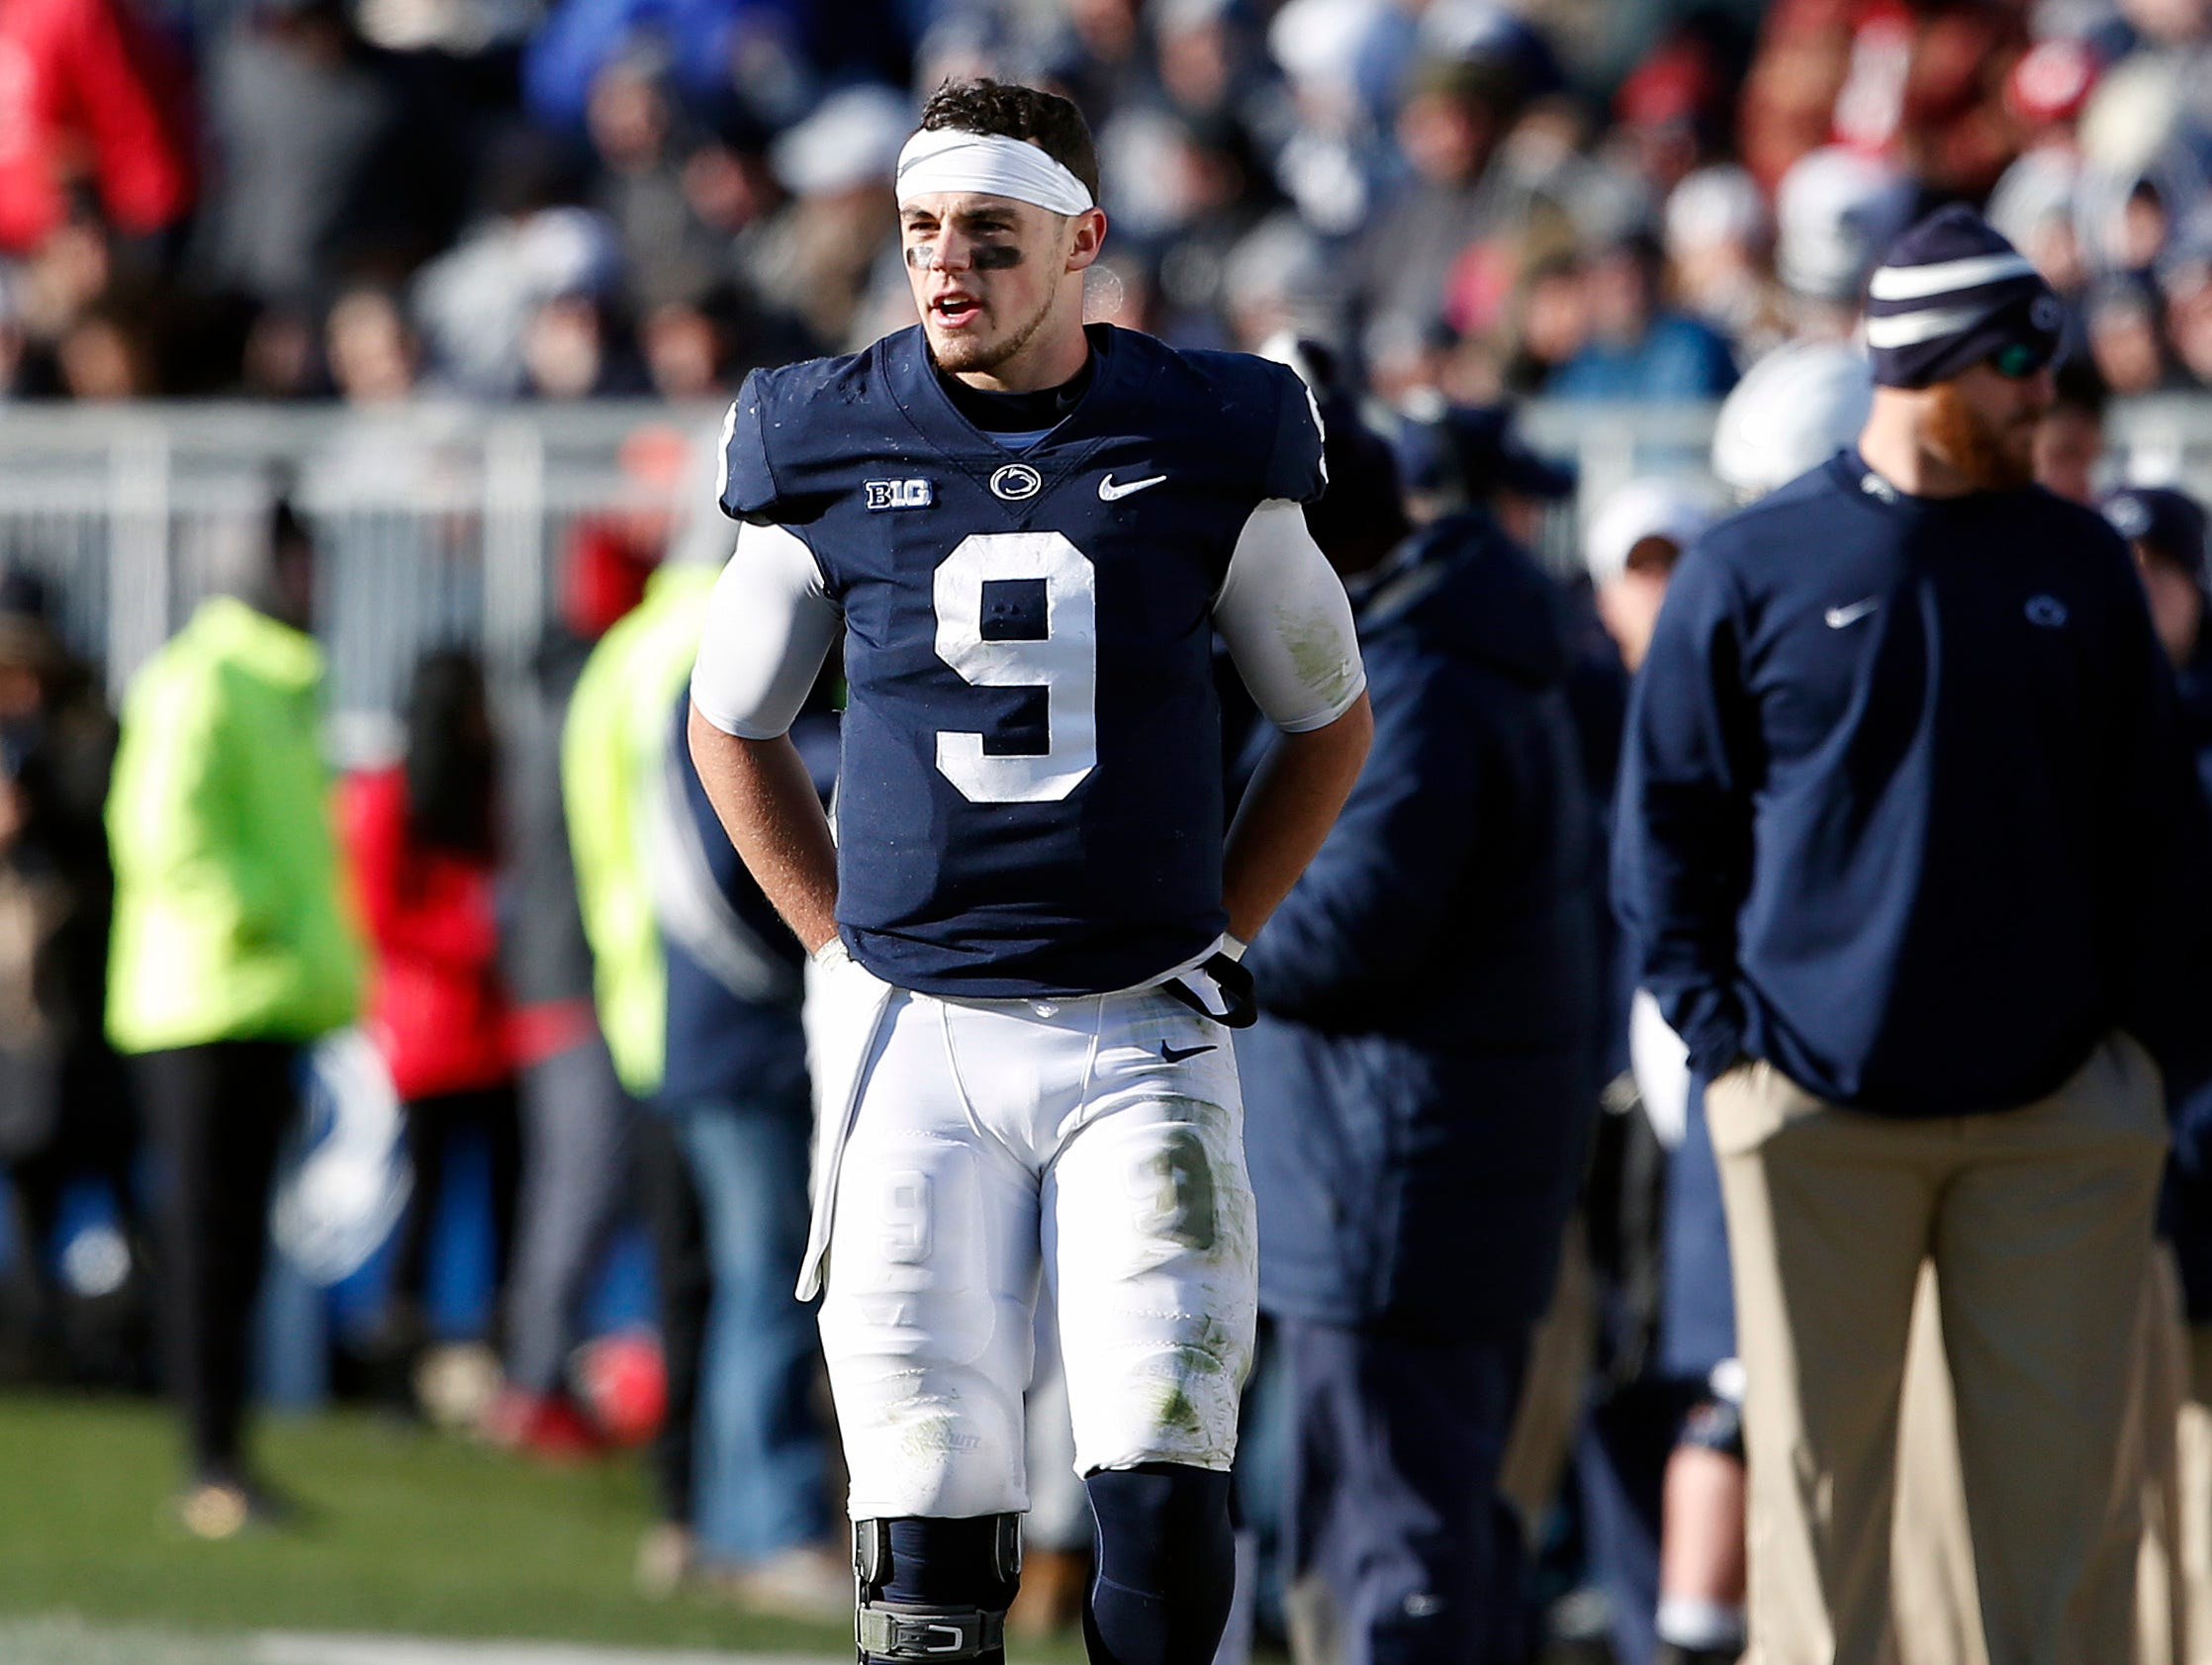 Penn State quarterback Trace McSorley (9) walks the sidelines during a timeout against Wisconsin in the second half of an NCAA college football game in State College, Pa., Saturday, Nov. 10, 2018. Penn State won 22-10.